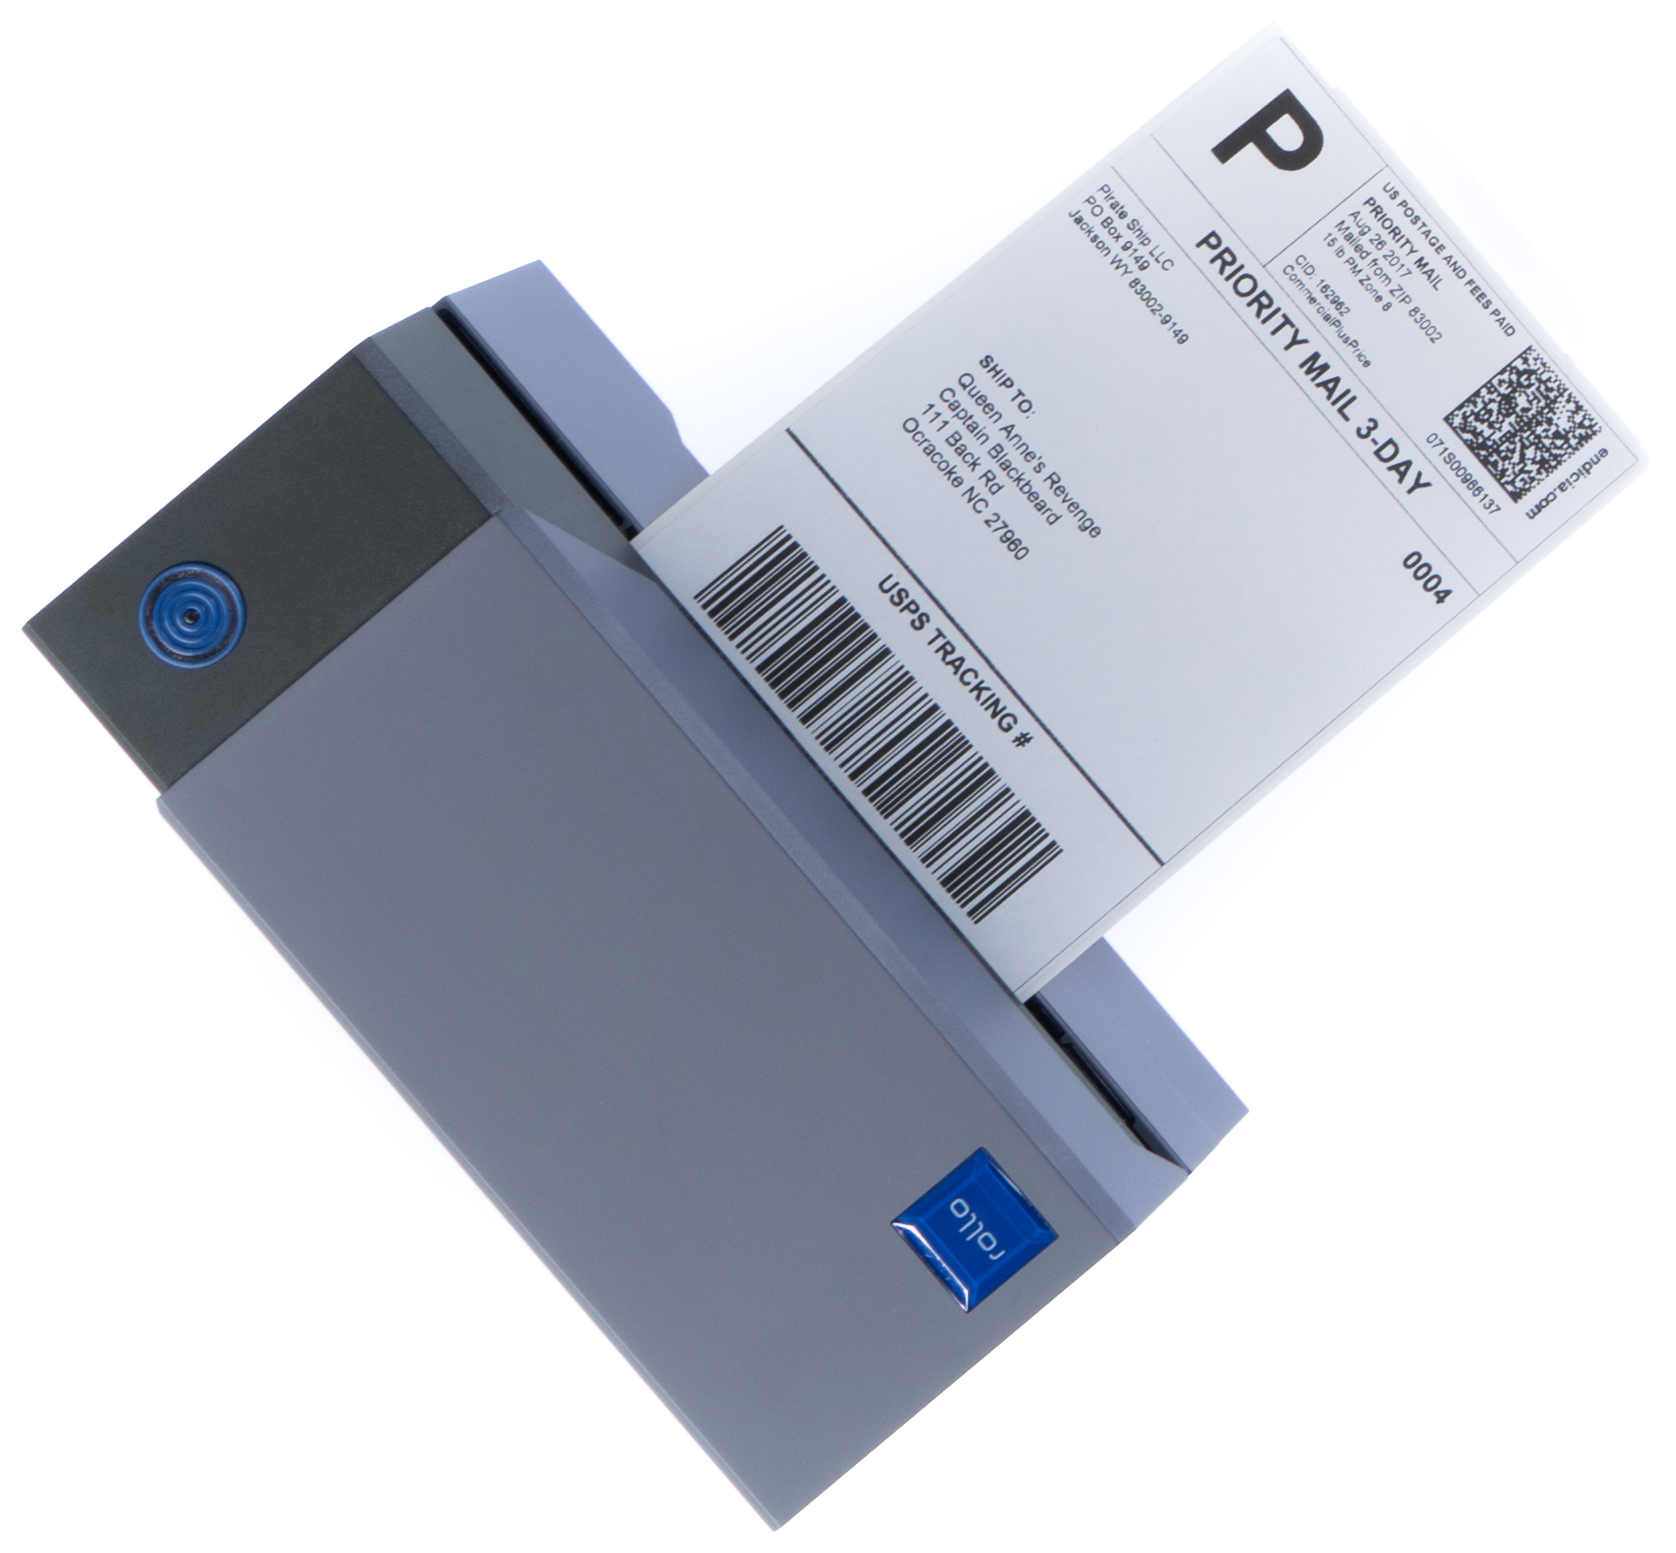 Rollo Label Printer with a Priority Mail postage label